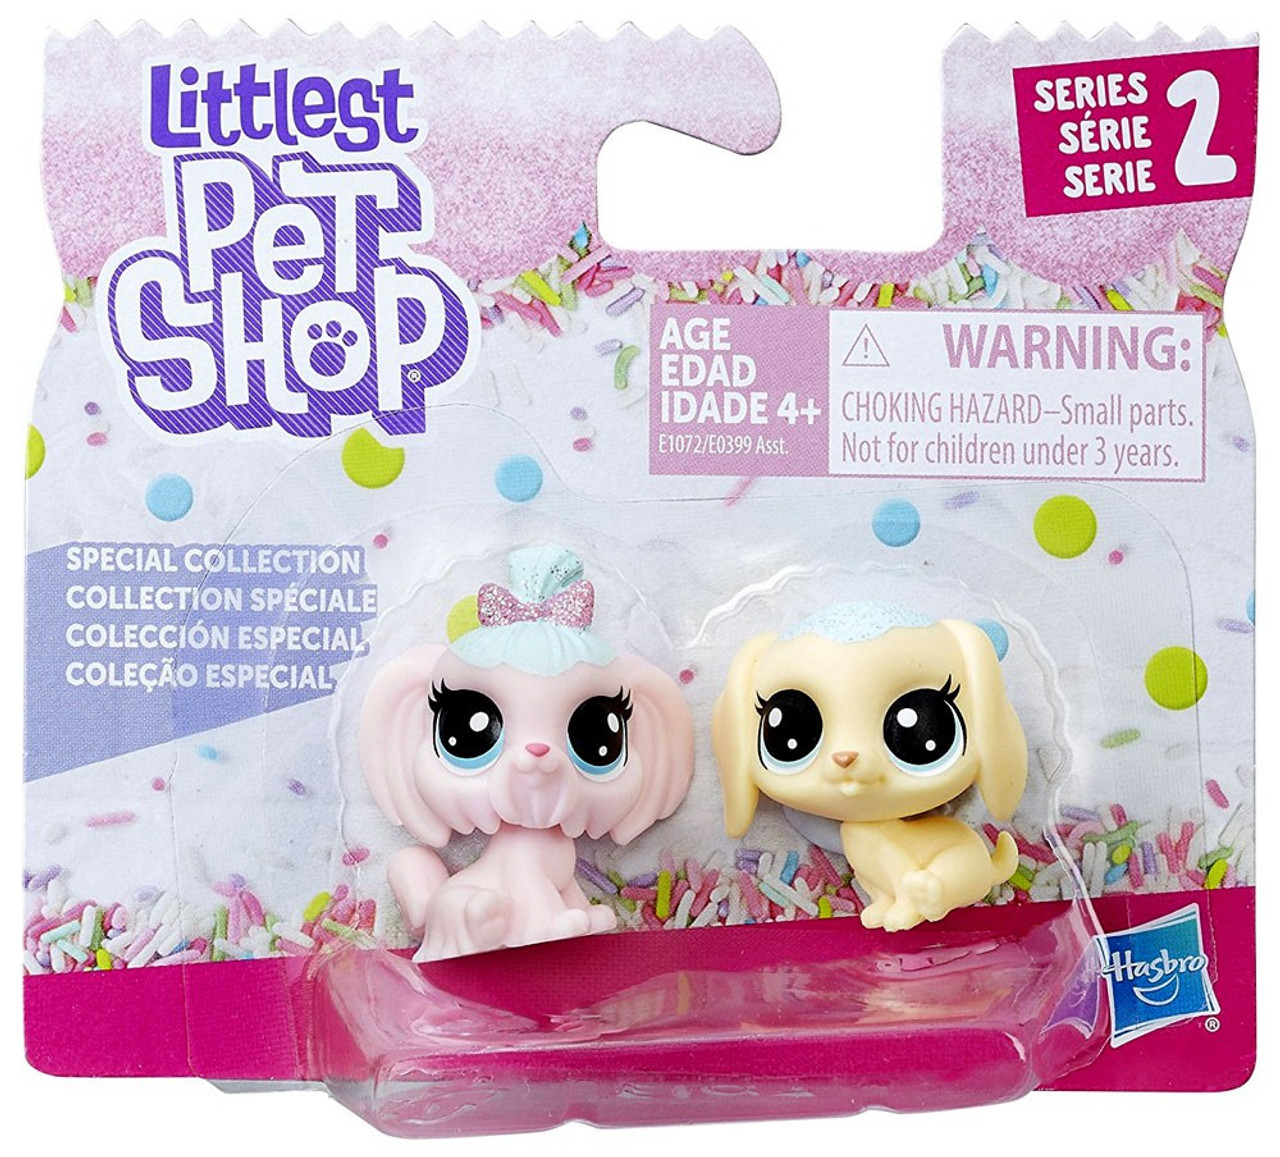 Littlest Pet Shop Special Collection Series 2 Pastry Beaglet Jammy